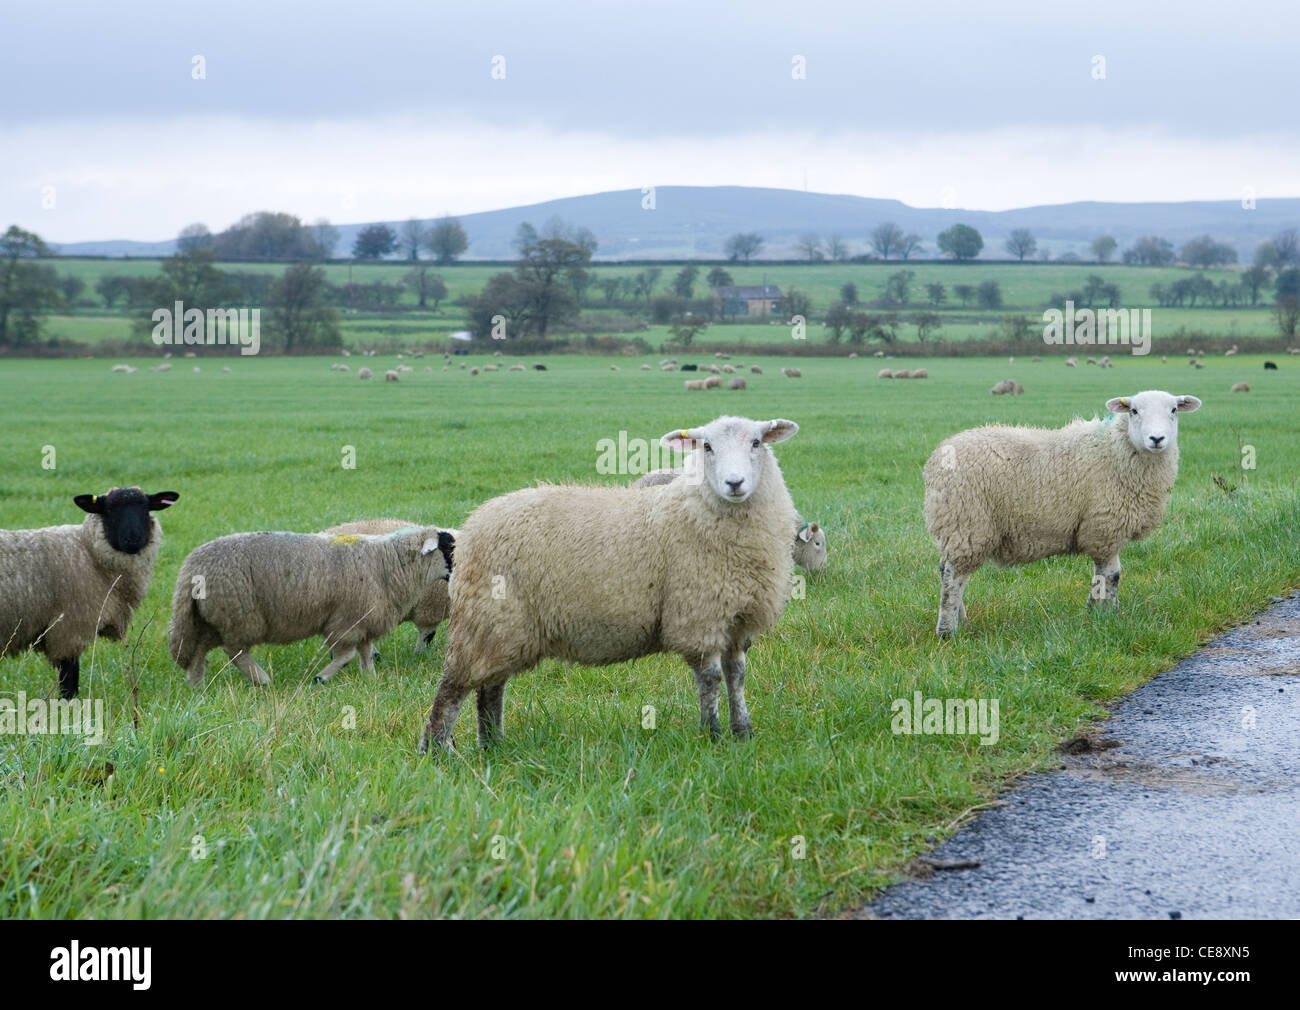 Sheep Group of adults standing in rain Clitheroe, UK - Stock Image